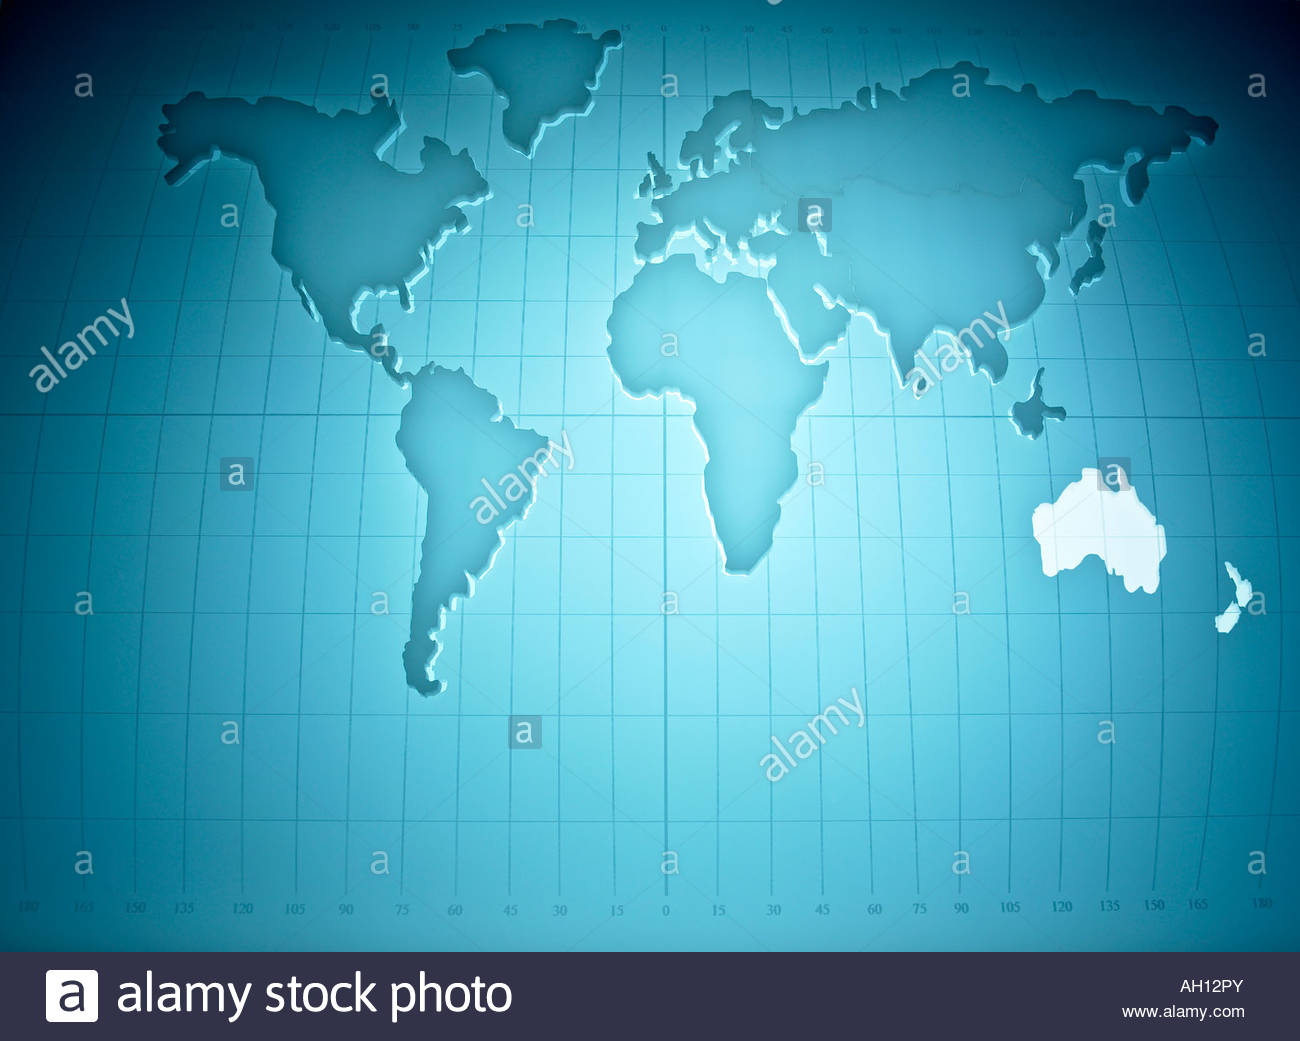 Map of the world highlighting Australia and New Zealand - Stock Image